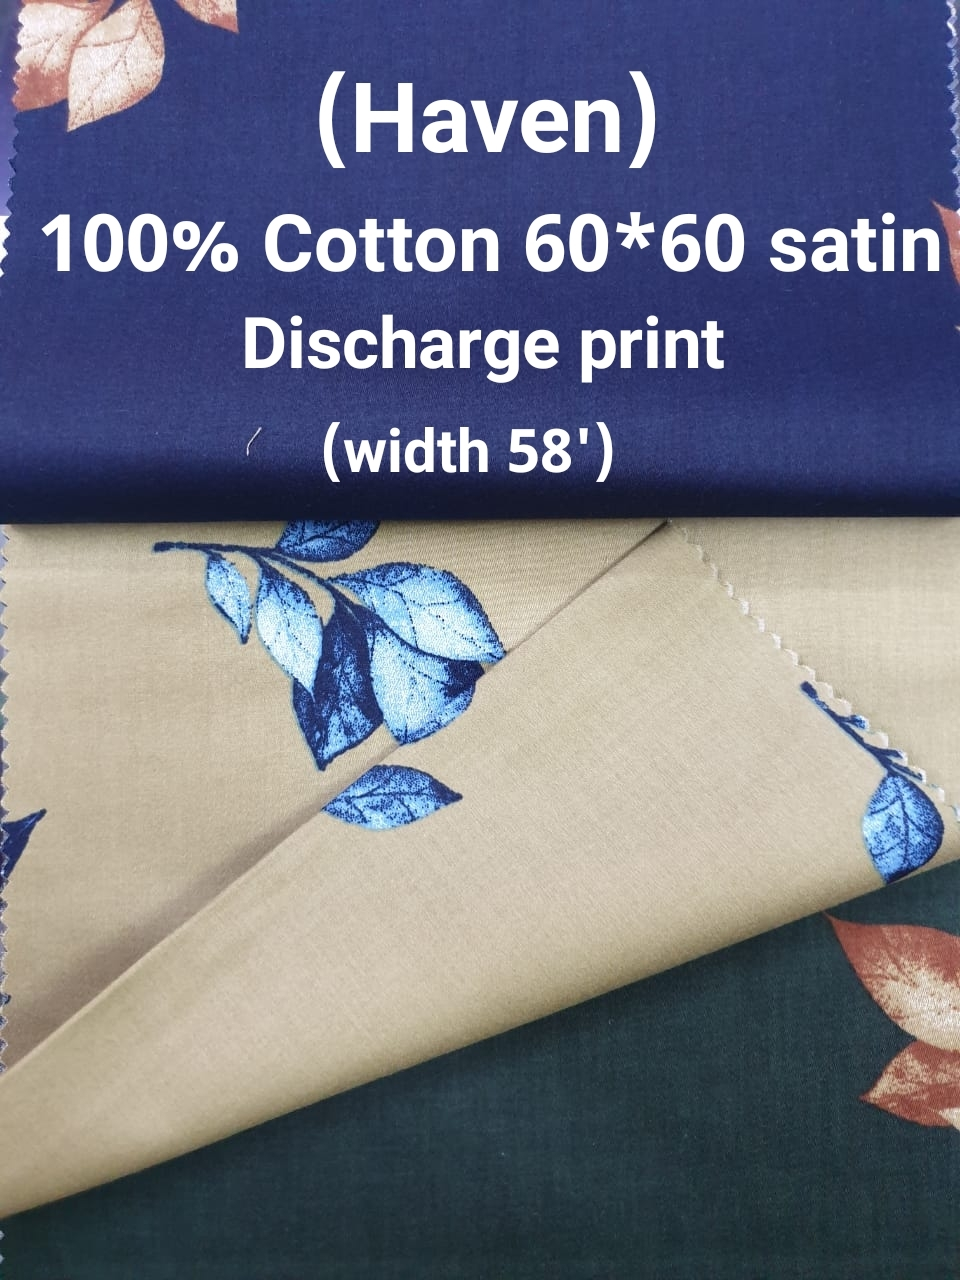 (HAVEN) 100% cotton 60*60 satin discharge print